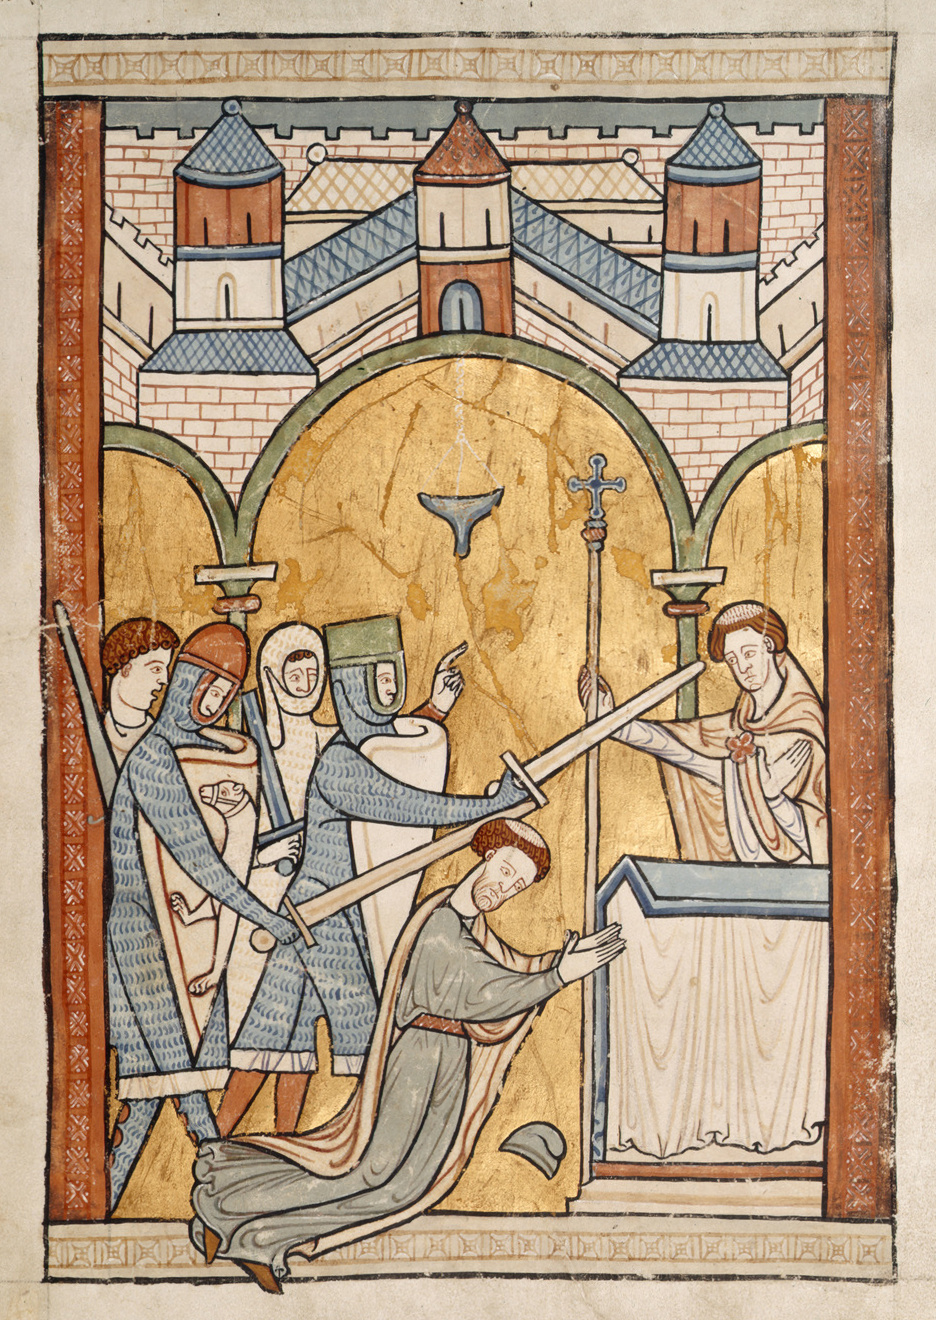 l'assassinio di Thoma Becket